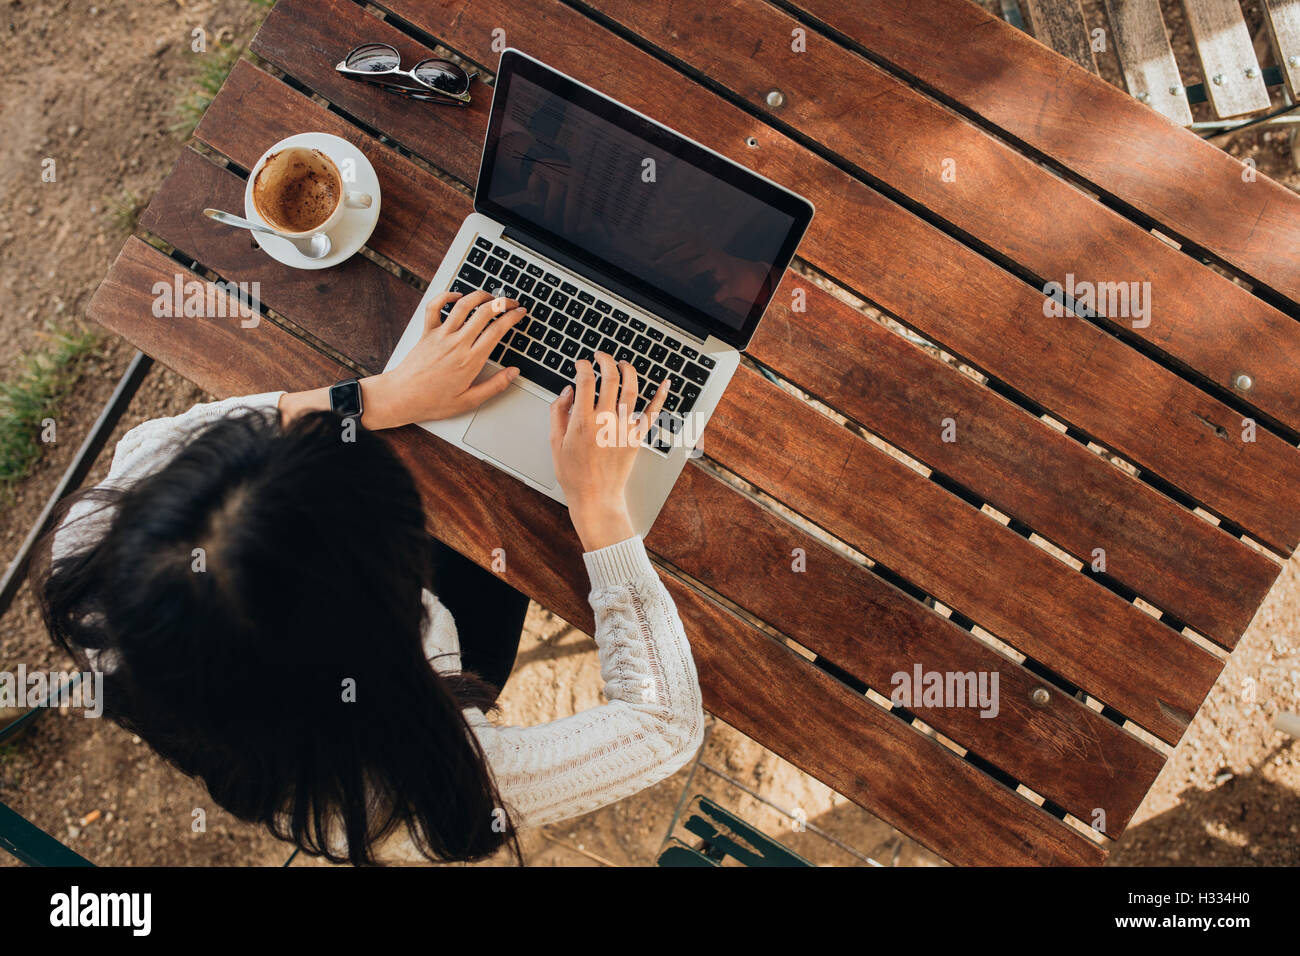 Overhead view of young female working on her laptop at a cafe. Top view shot of female sitting at a table with a - Stock Image